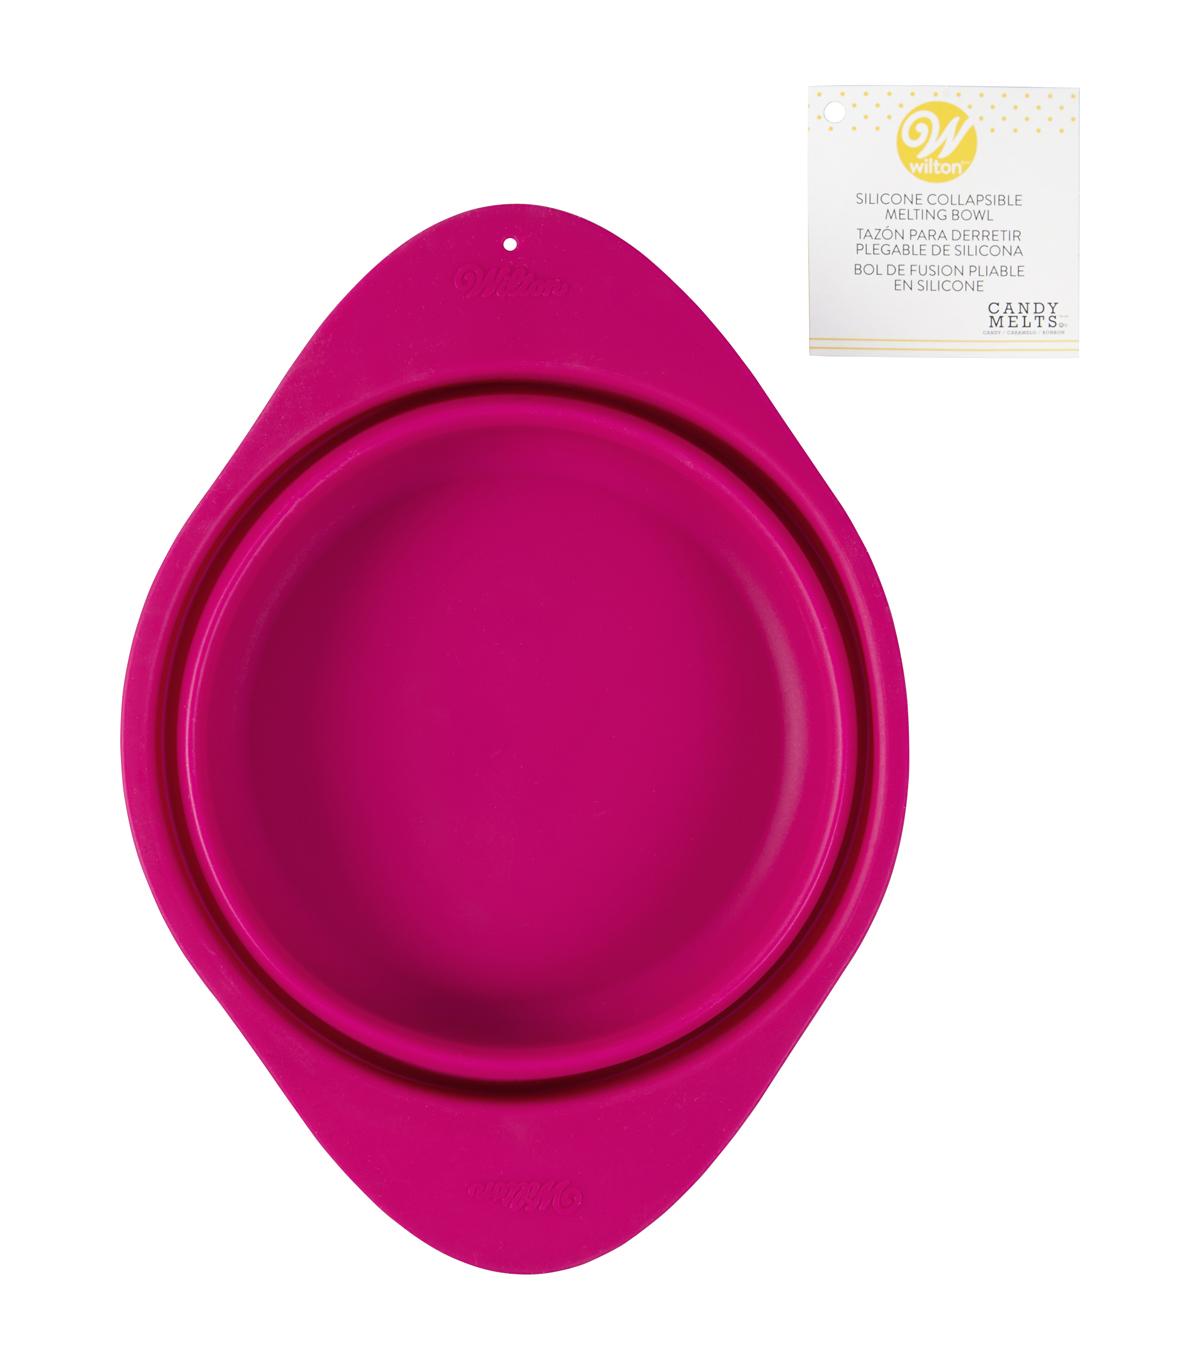 Wilton Candy Melts 24 oz. Silicone Collapsible Melting Bowl